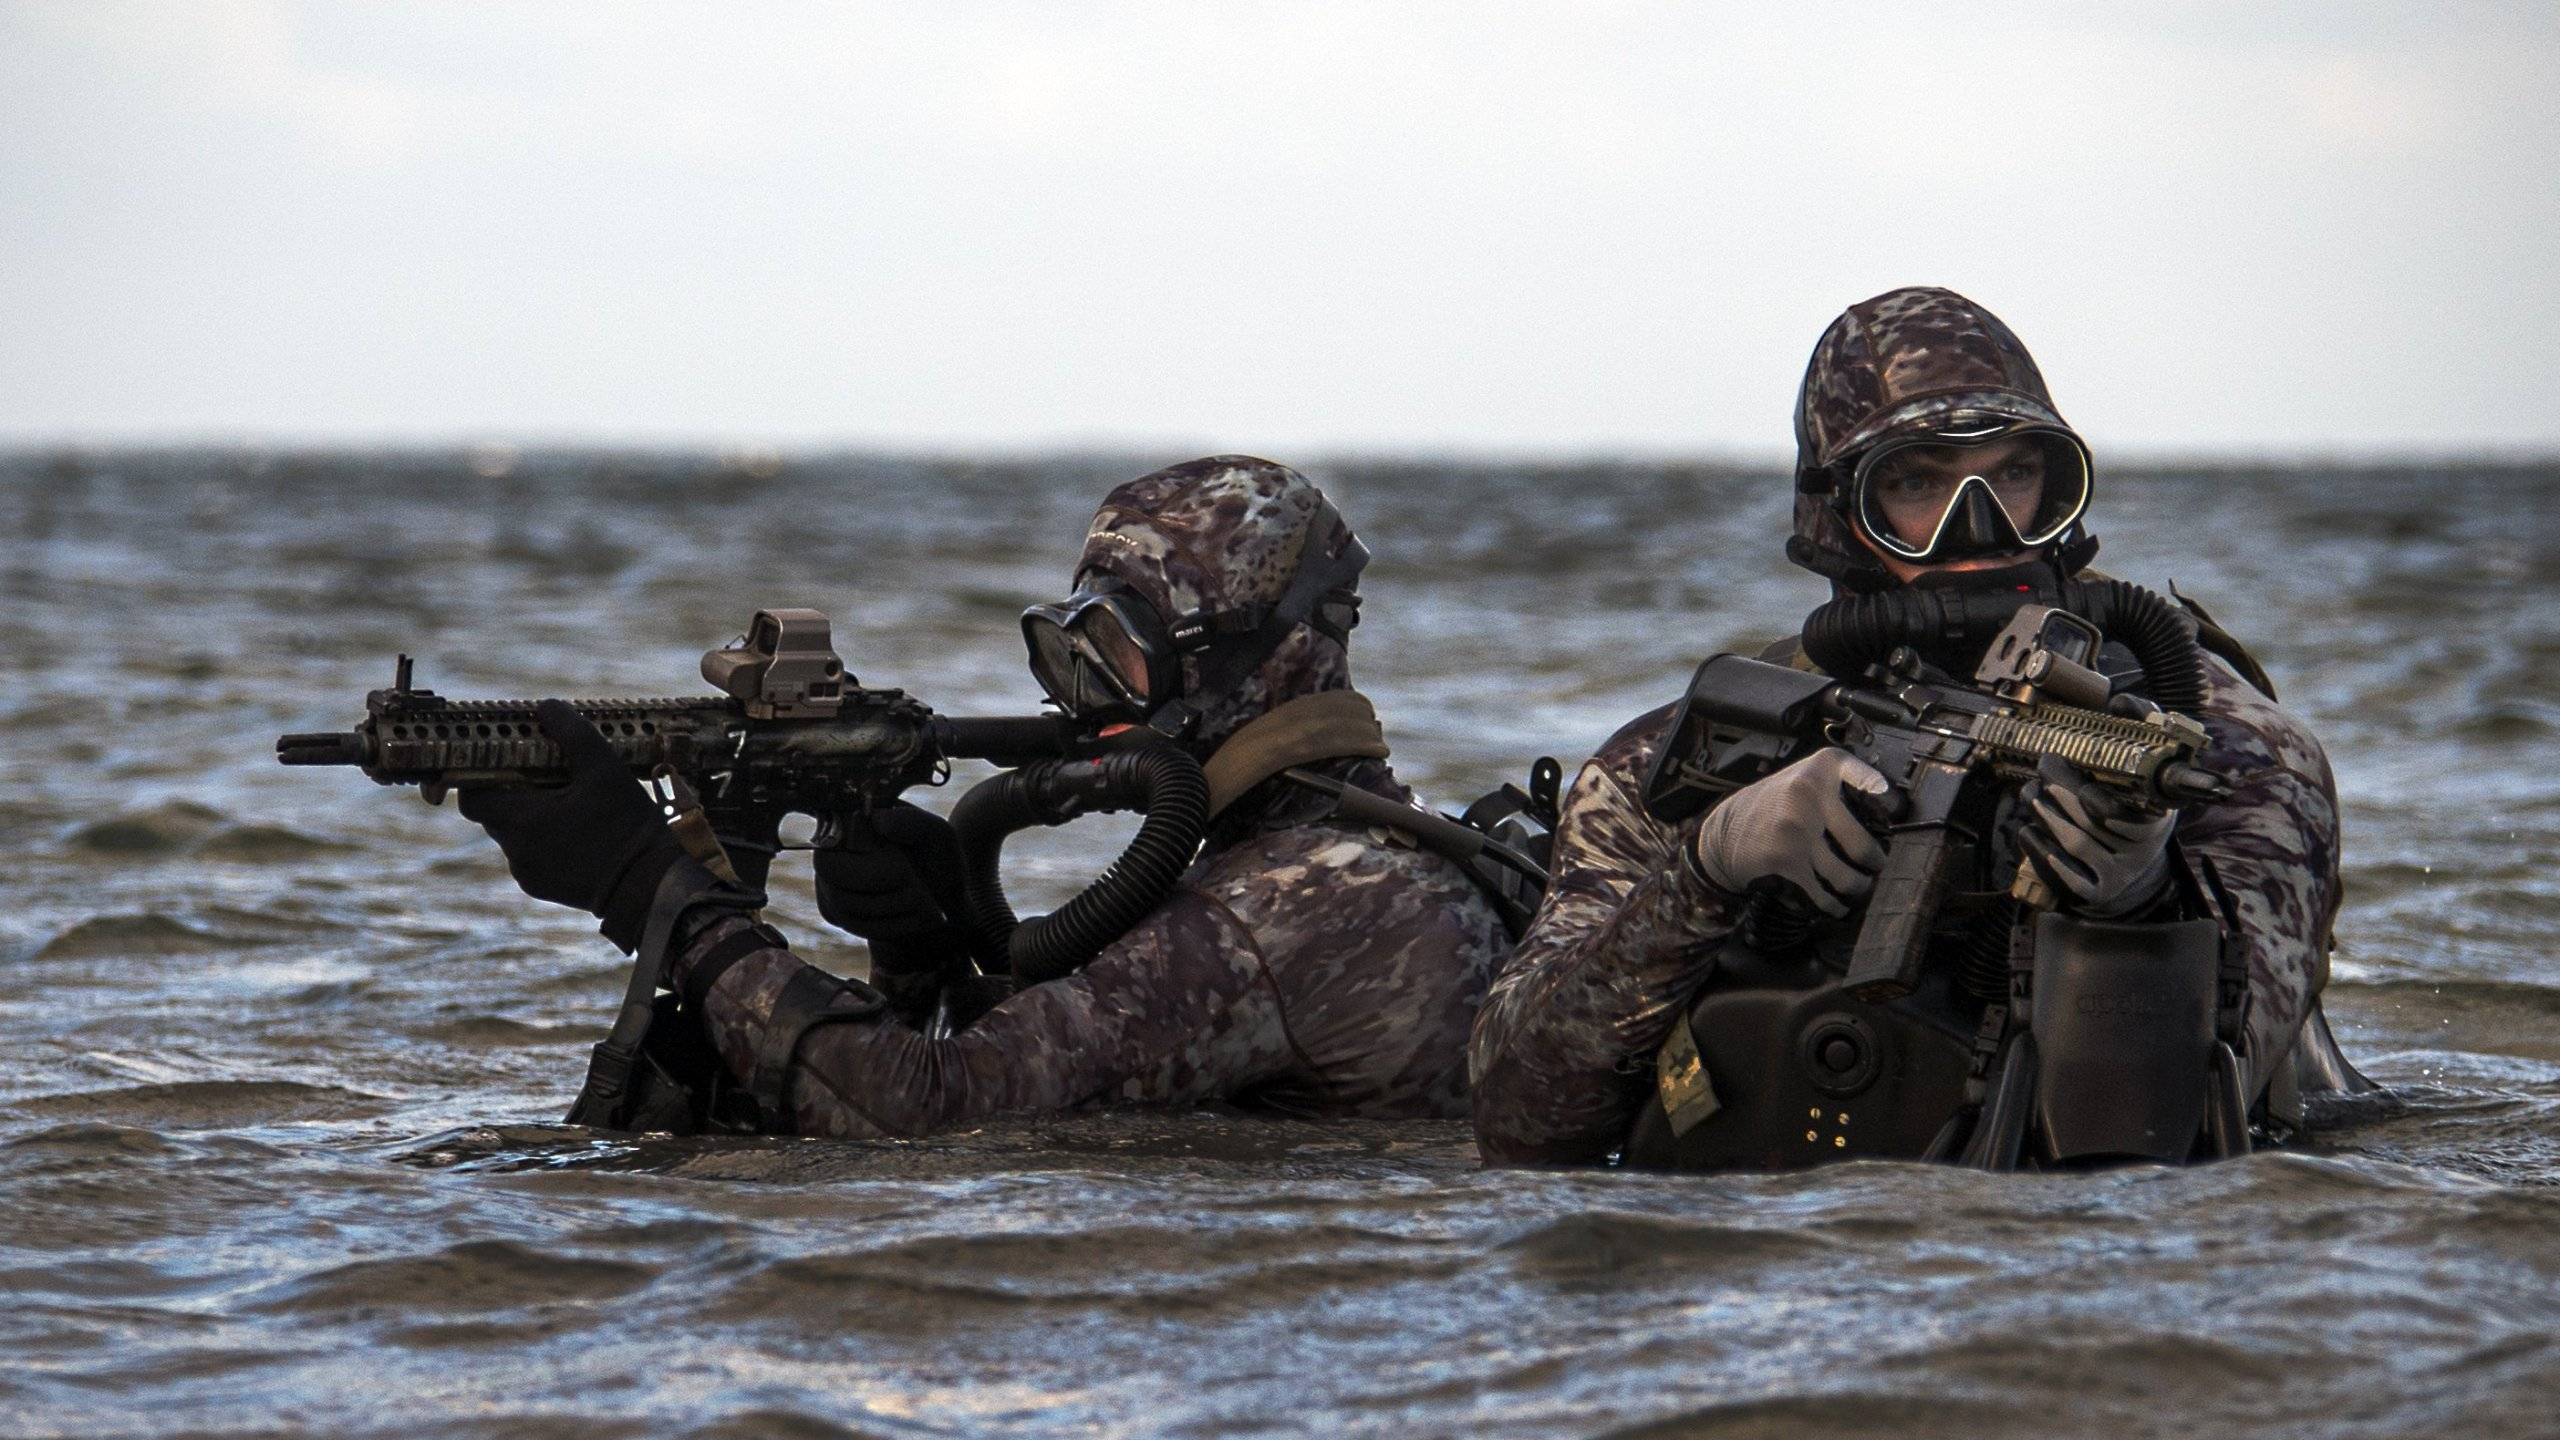 Members of a U.S. Navy SEAL team appear in this undated photo. (Credit: MCCS Jayme Pasoric / U.S. Navy via CNN)